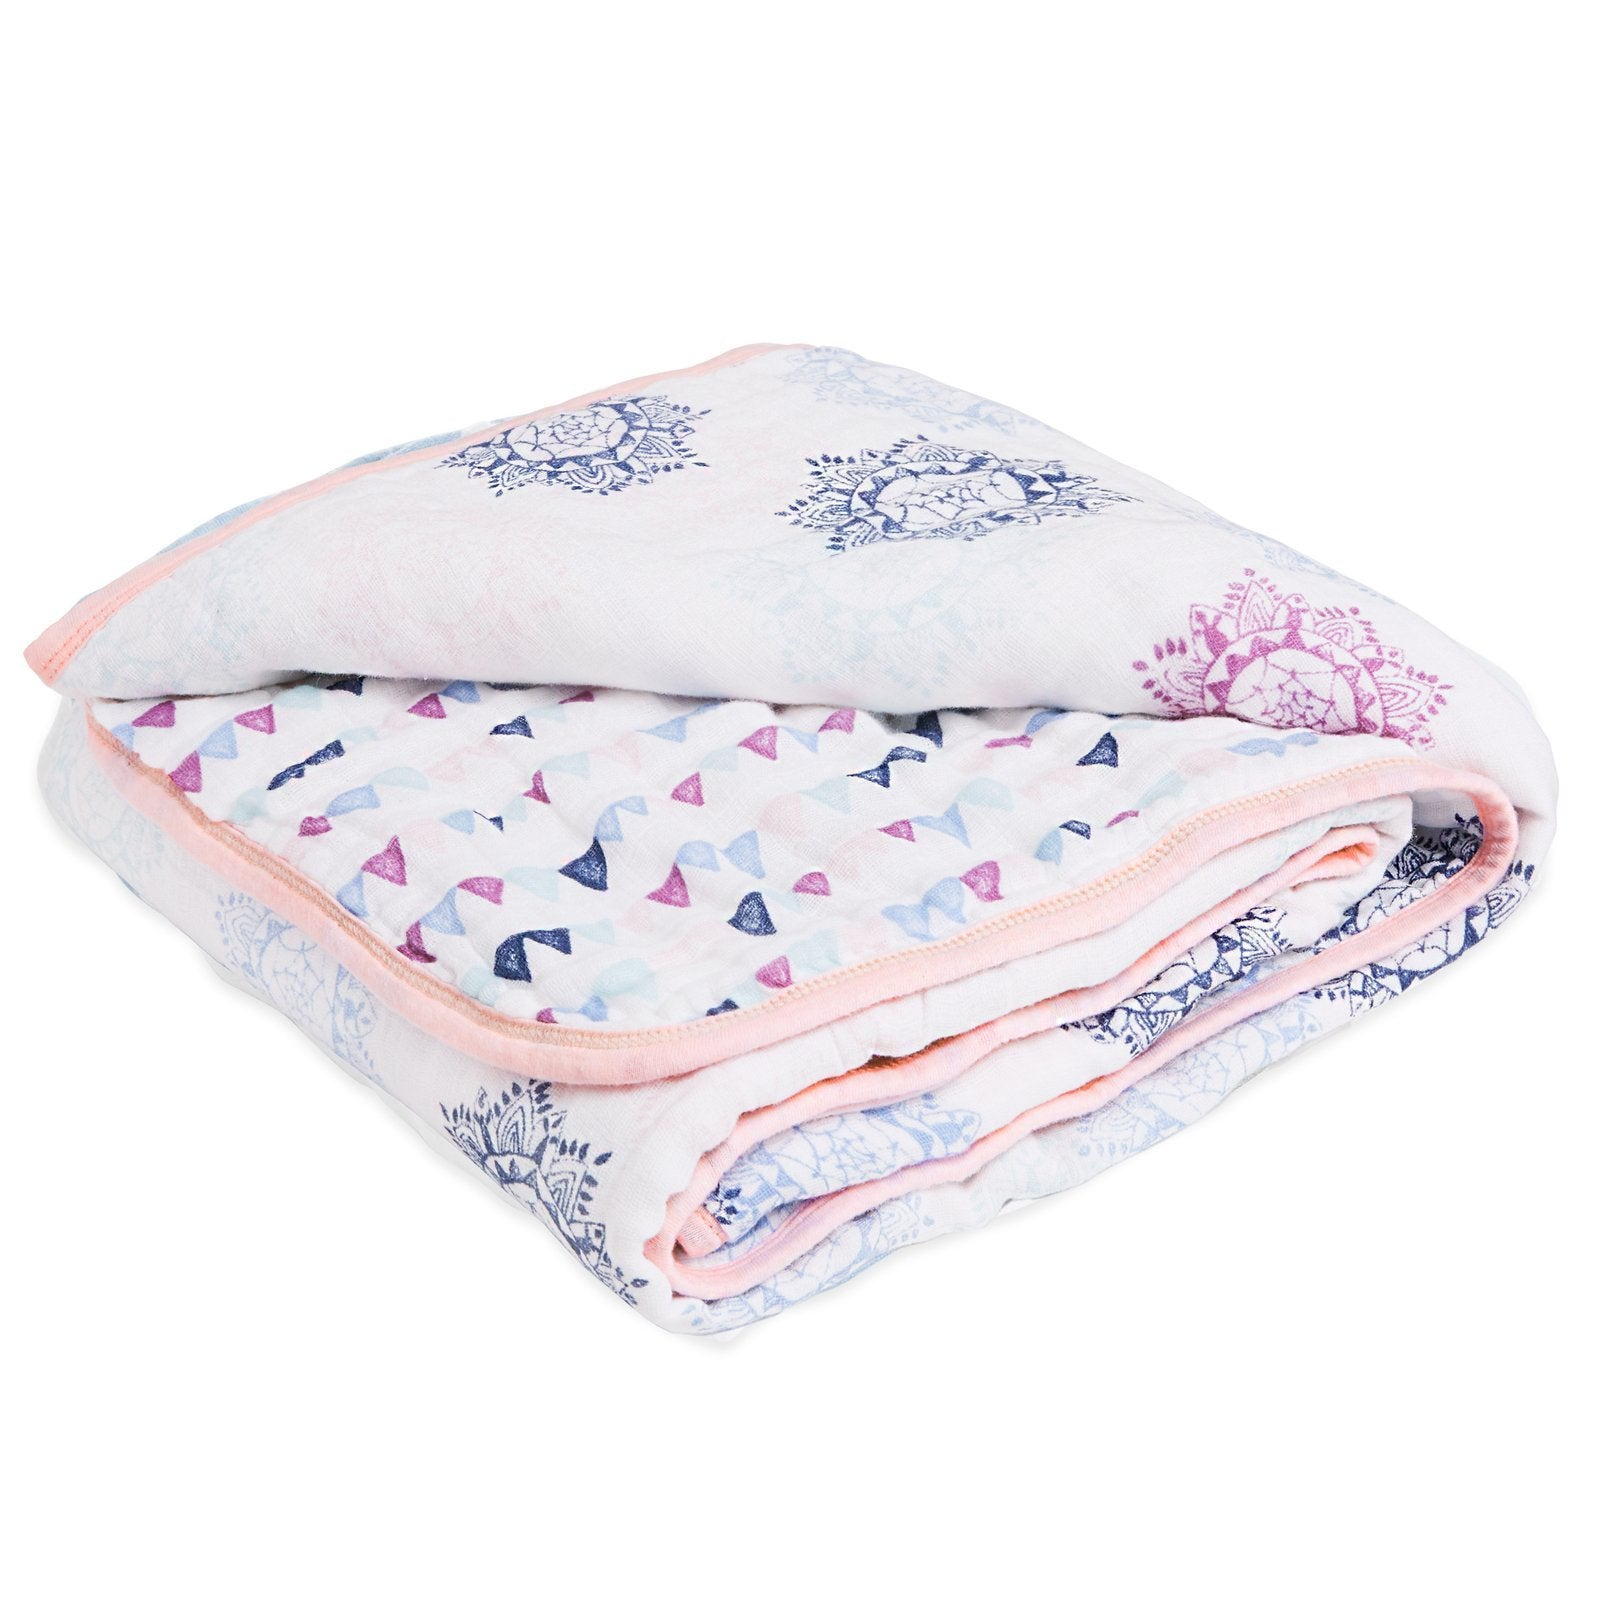 aden by aden + anais: pretty pink large classic muslin dream blanket